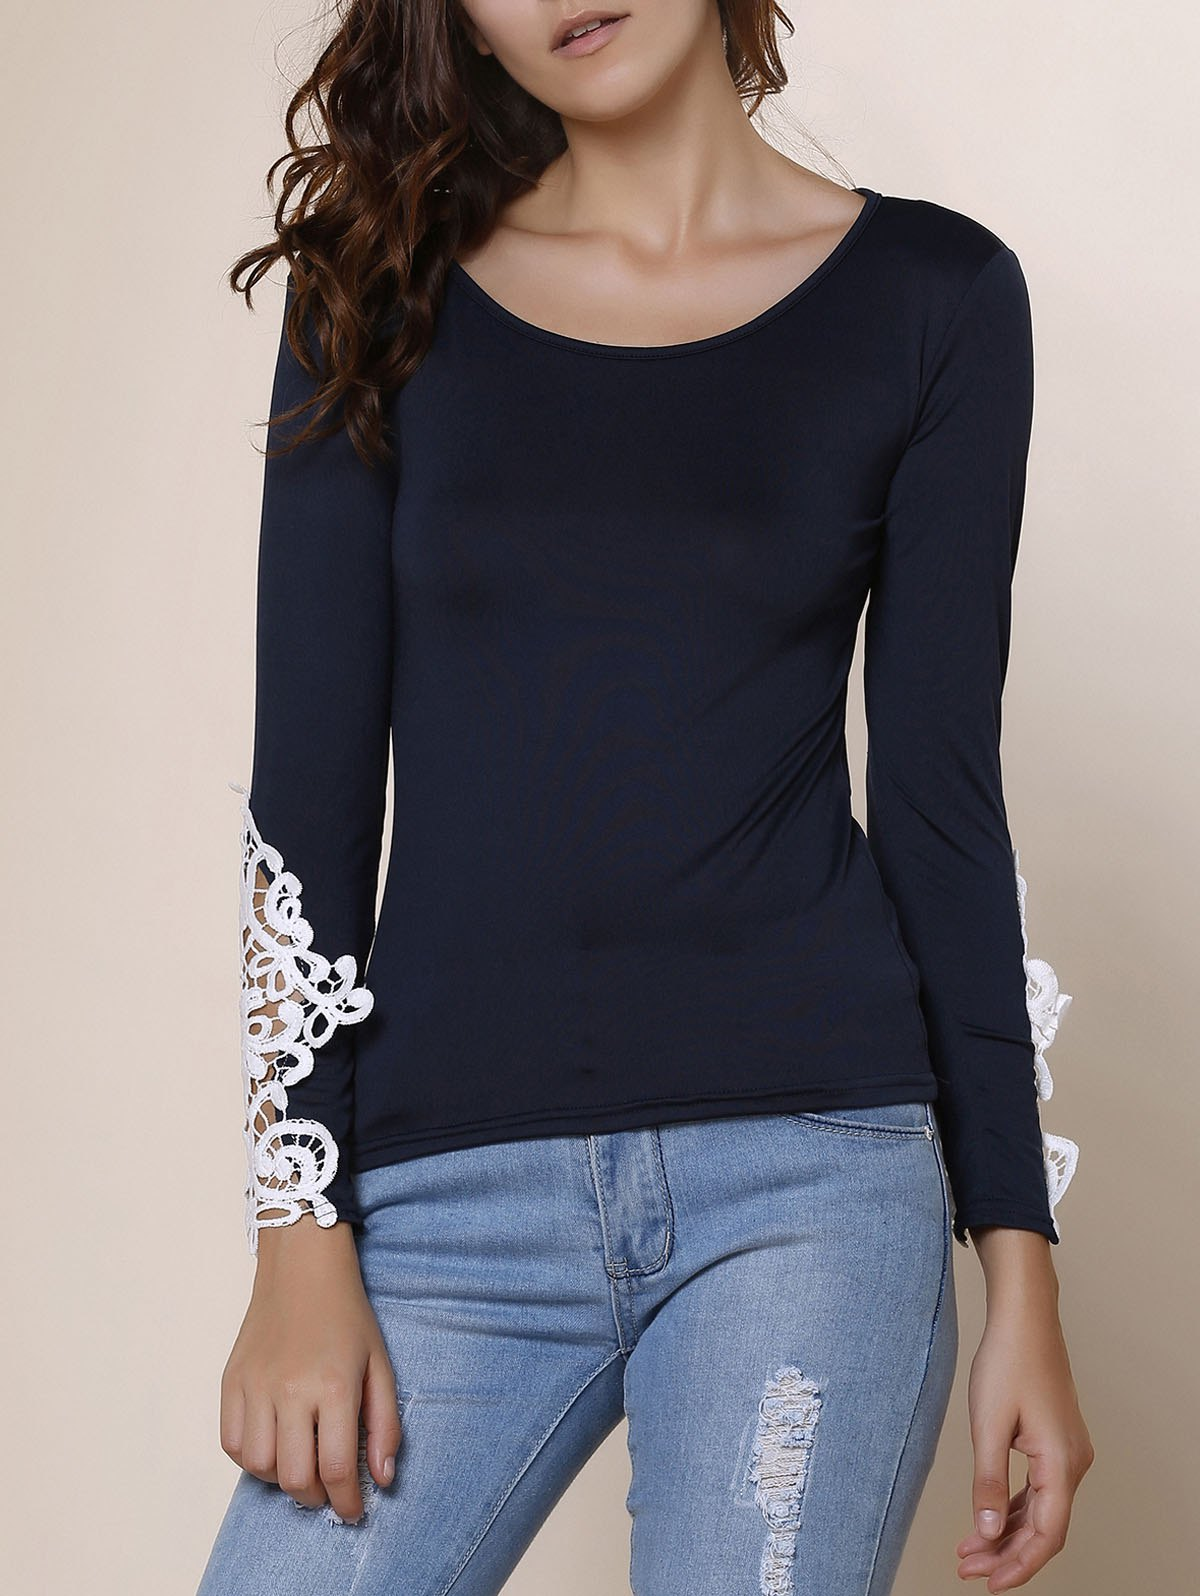 Stylish Women's Scoop Neck Long Sleeve Lace Embellished T-Shirt - DEEP BLUE S